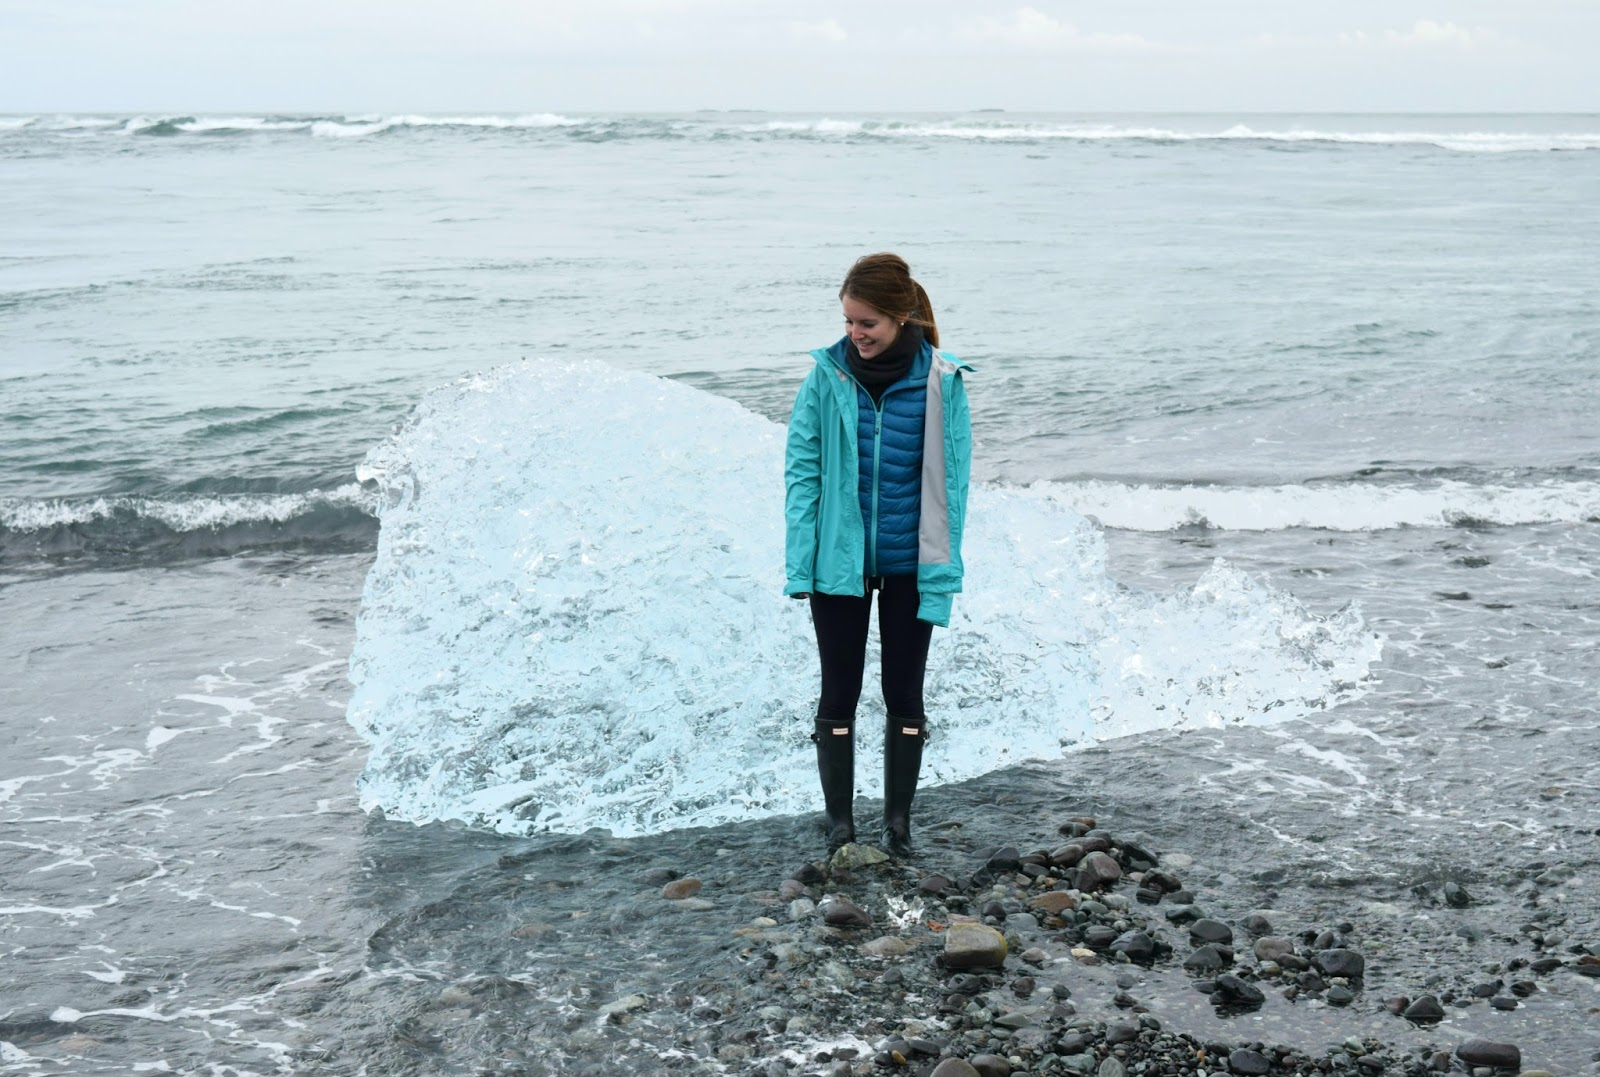 Me with a chunk of glacier from the Jökulsárlón Glacier. The chunks are falling off of Vatnajökull glacier, Europe's largest glacier.